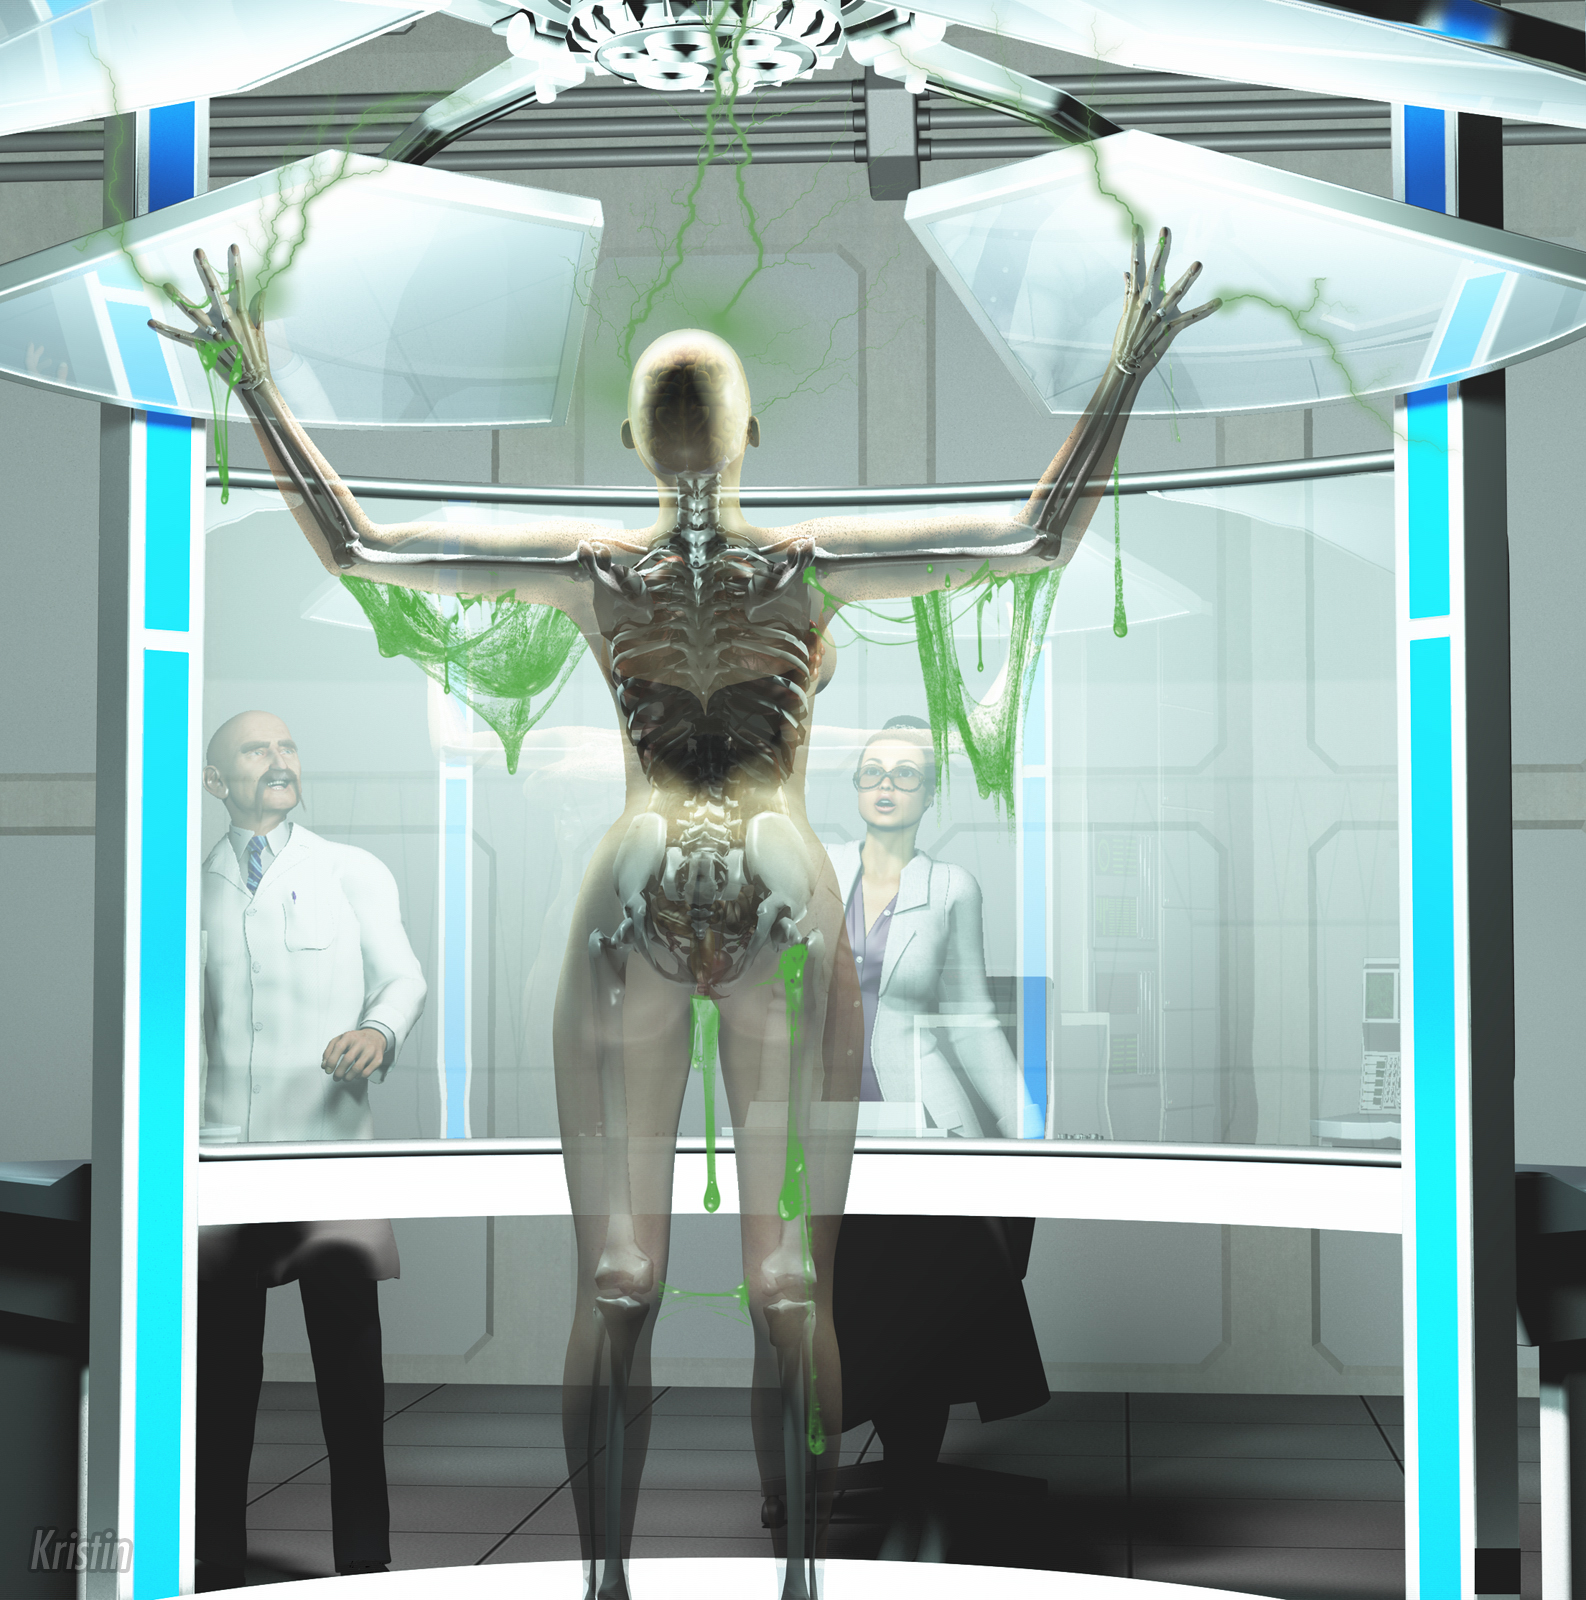 Naked coed zapped with radiation, begins to turn transparent, liquify